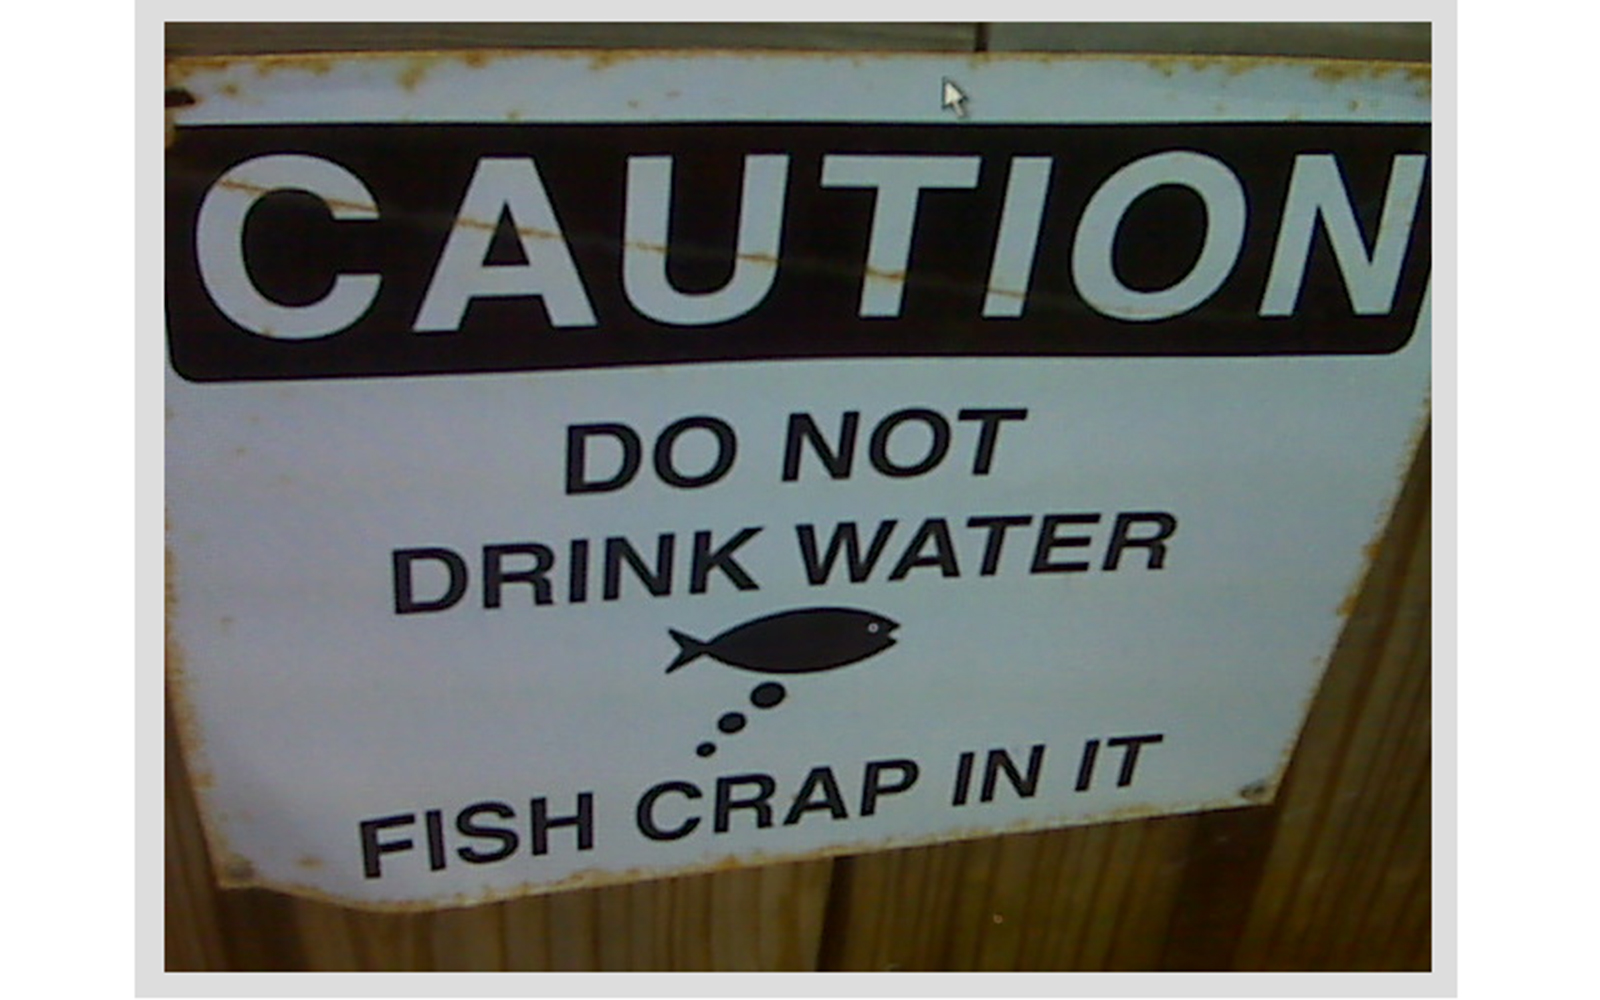 Funny Signs from Around the World: fish crap